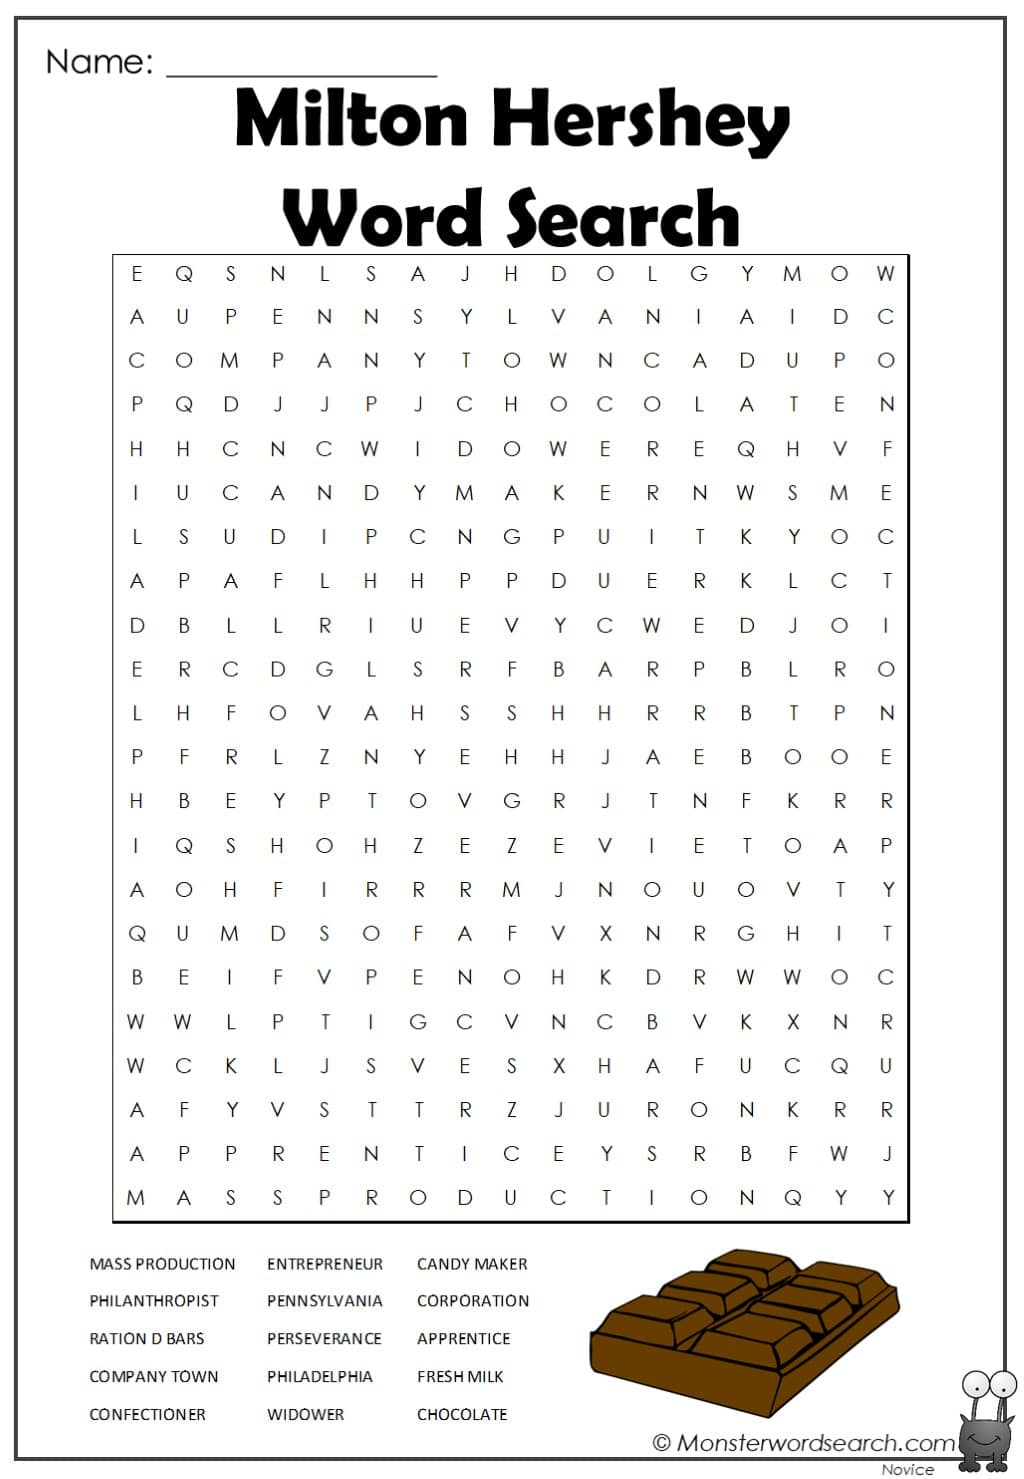 Milton Hershey Word Search Monster Word Search